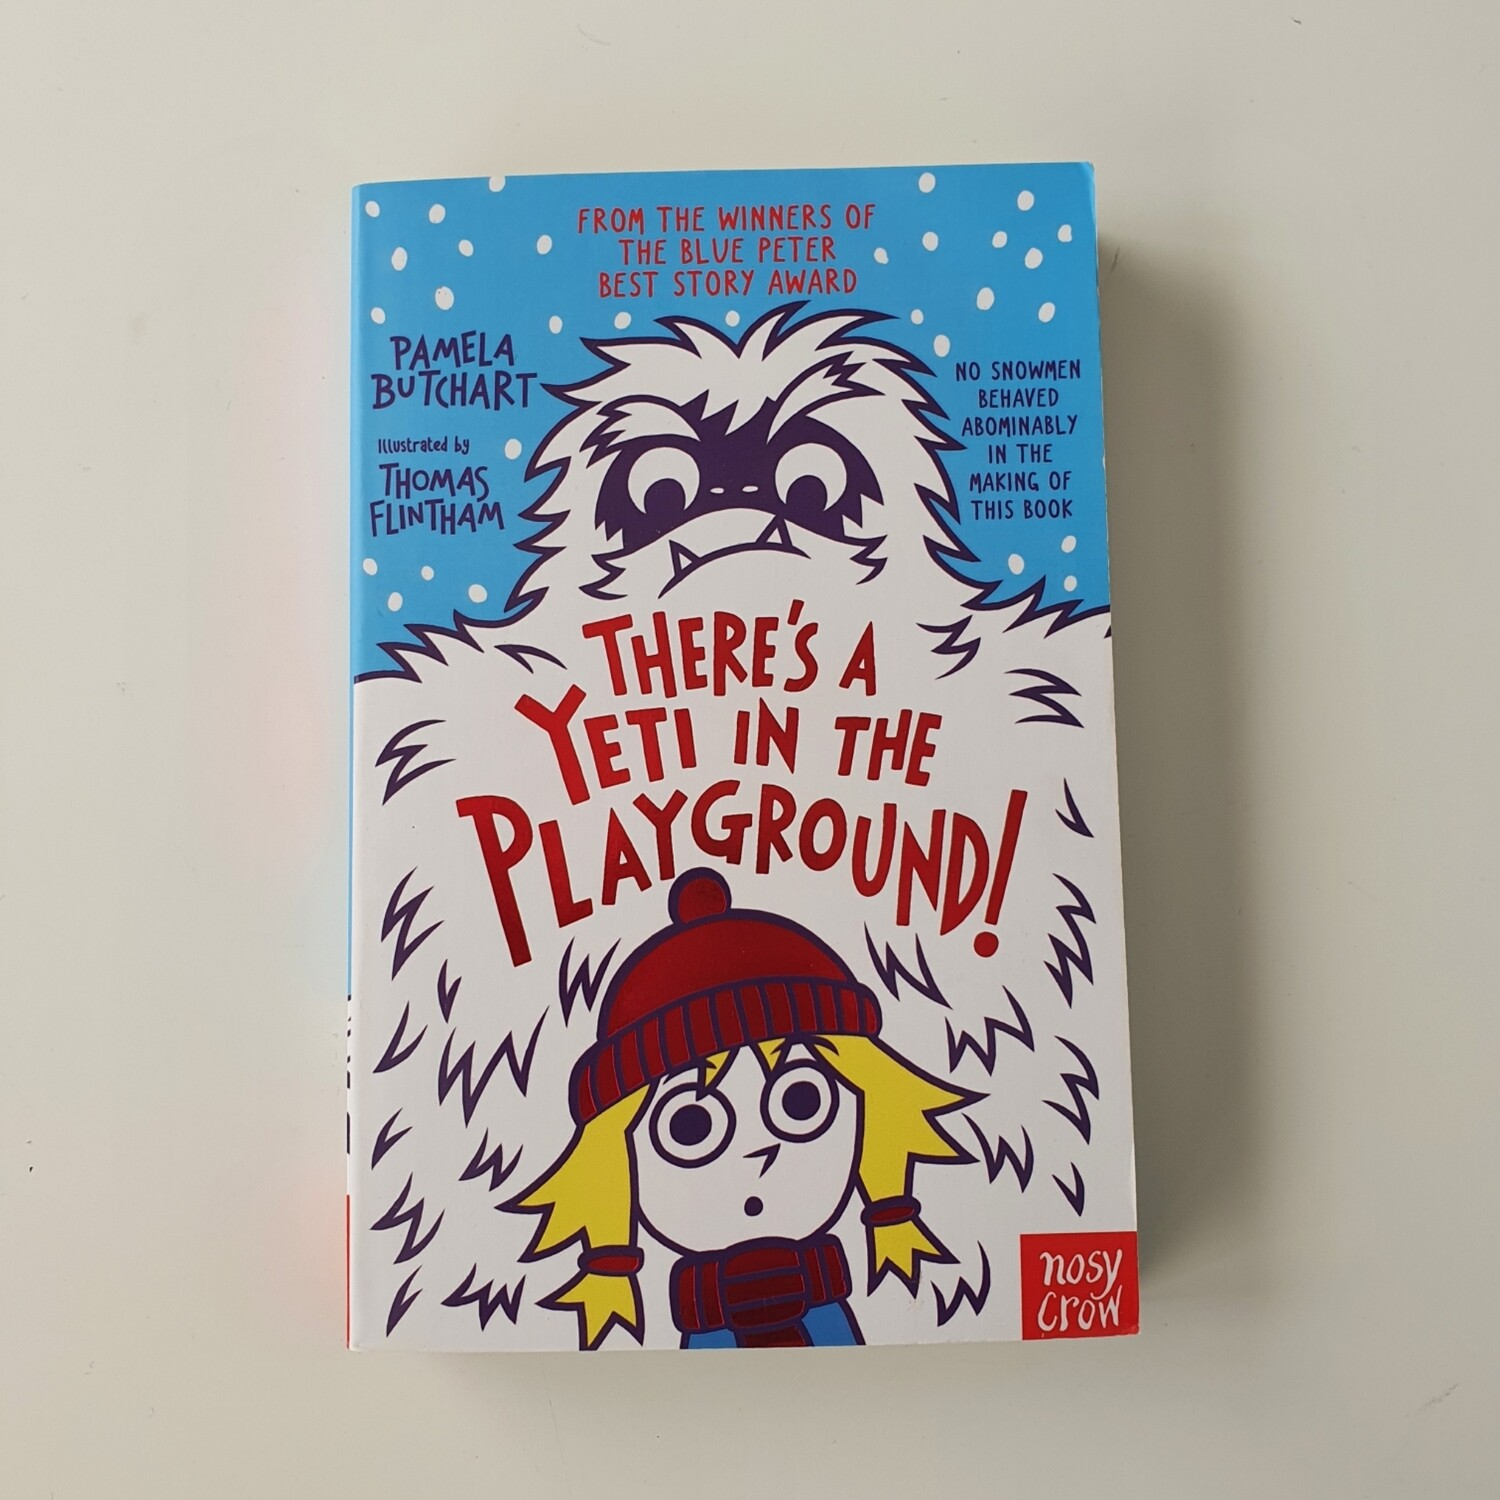 There's a Yeti in the Playground Notebook - made from a paperback book